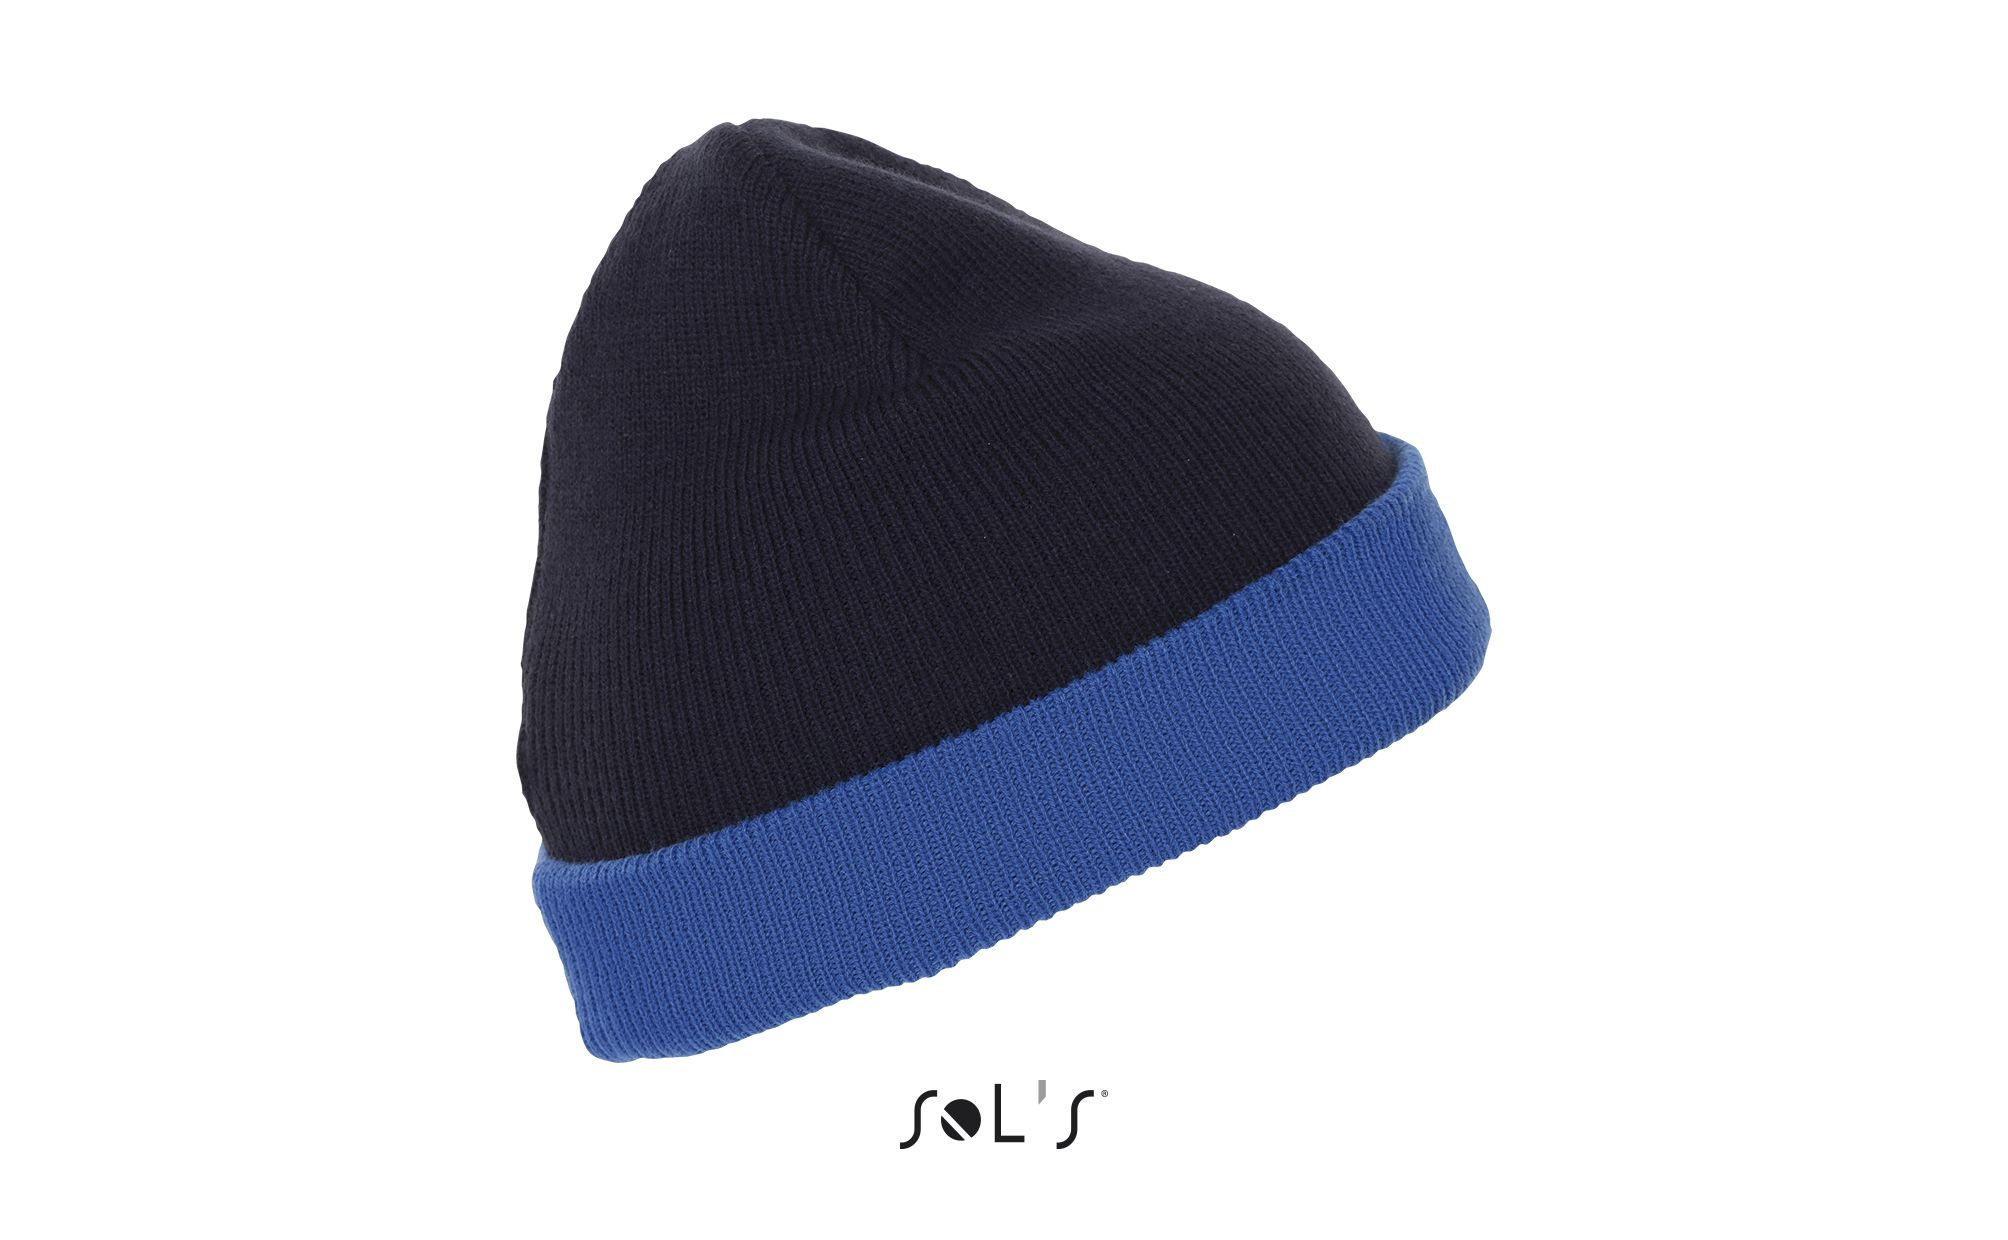 533 - Royal blue / French navy